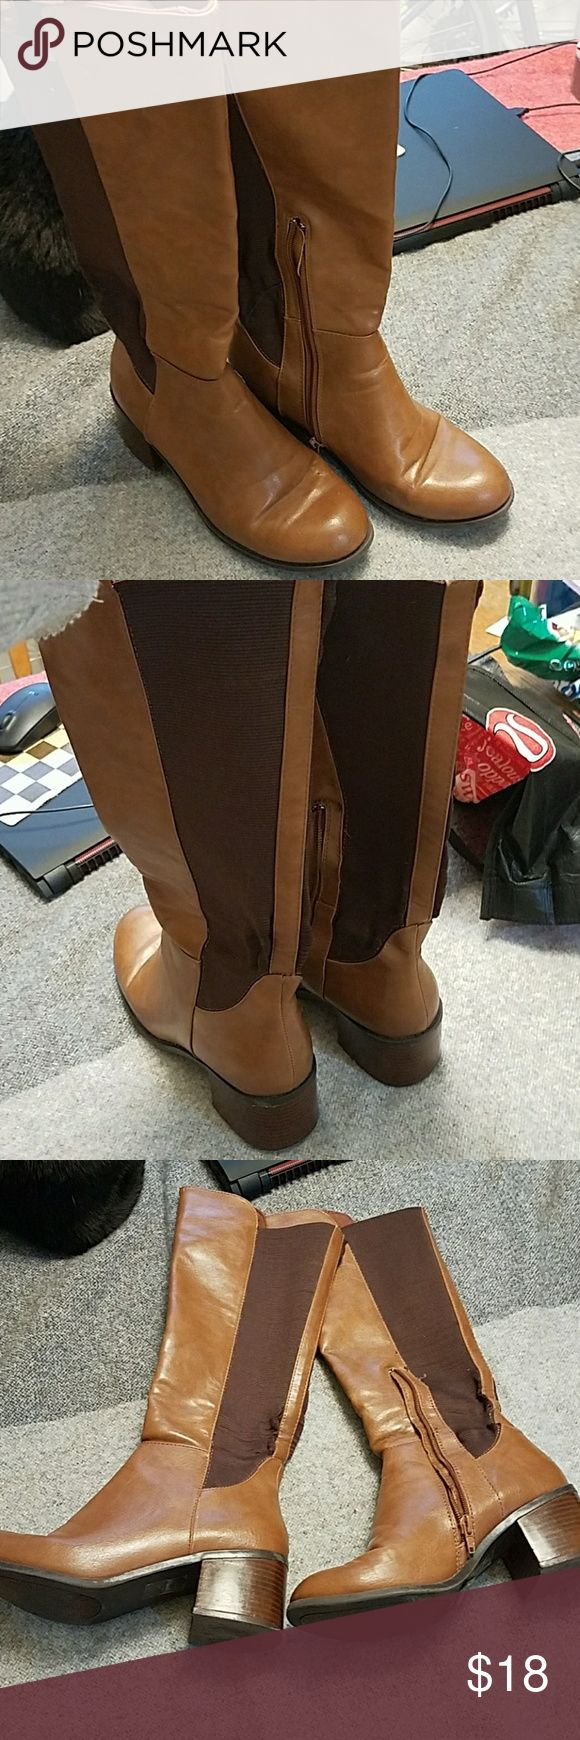 FOREVER 21 cognac riding boots, chunky heel. The riding boots are in a stylish cognac color with a stacked 3 inch heel. They have side zippers and a cloth fabric back. They are in good condition but have a few scuffs and wear. Forever 21 Shoes Heeled Boots